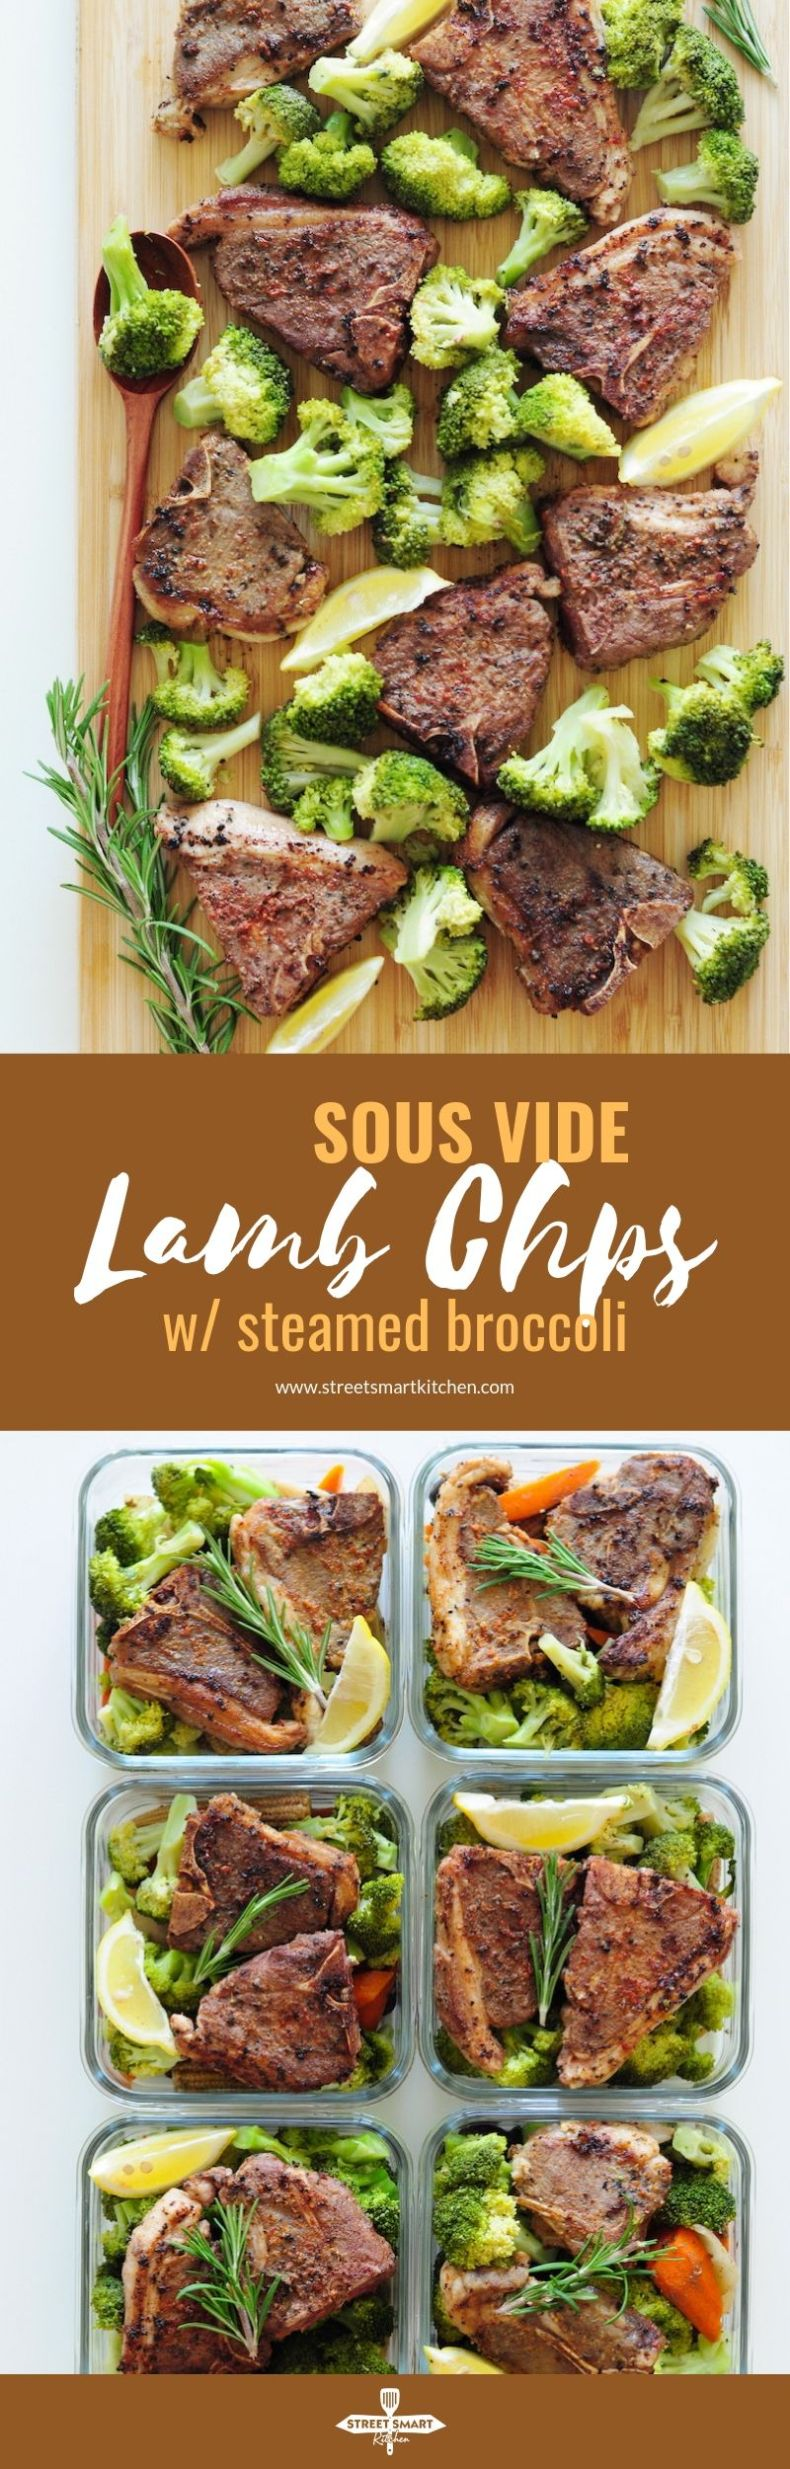 Tender, juicy, and melt-in-your-mouth from the inside out, these sous vide lamb chops are so easy to make! Pair them with steamed broccoli for a balanced and low-carb meal.